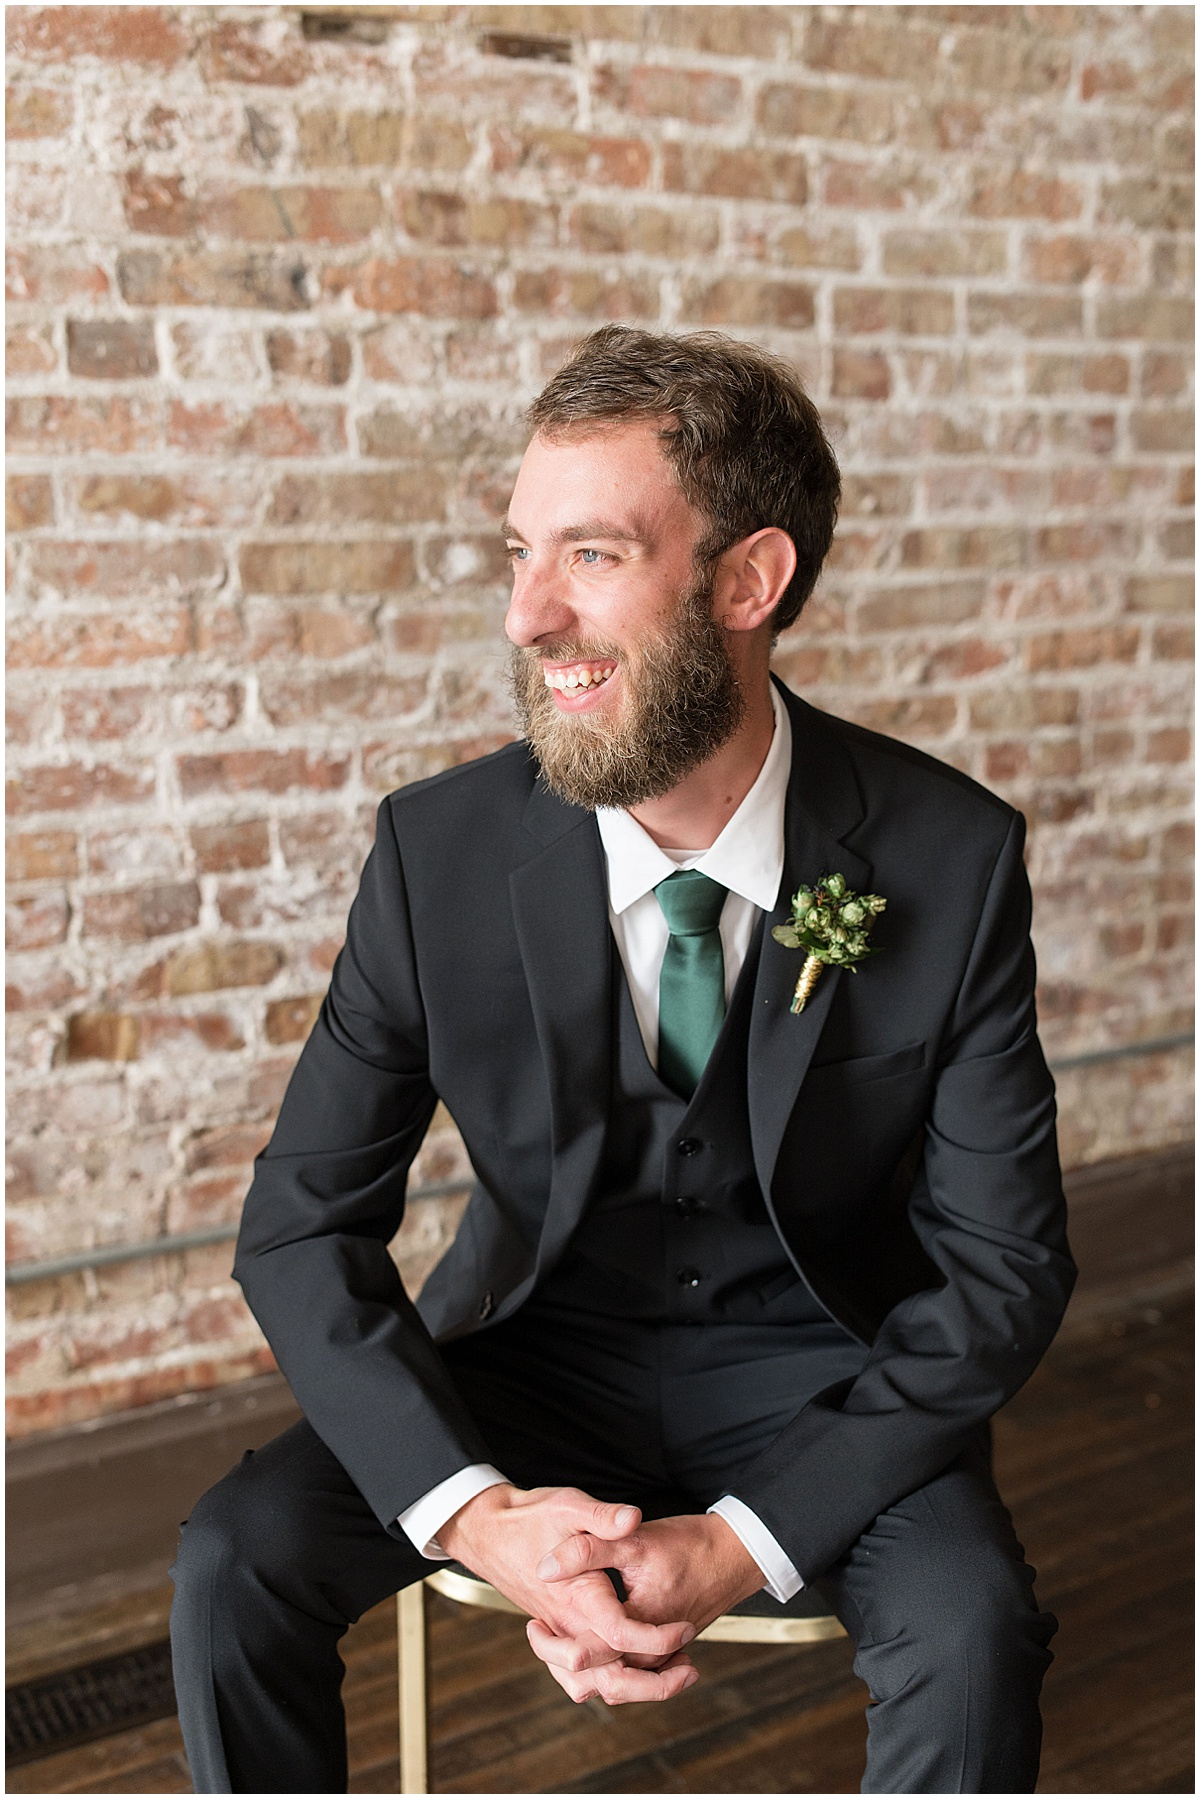 Groom ready for eMbers Venue wedding in Rensselaer, Indiana with a bride wearing black by Victoria Rayburn Photography